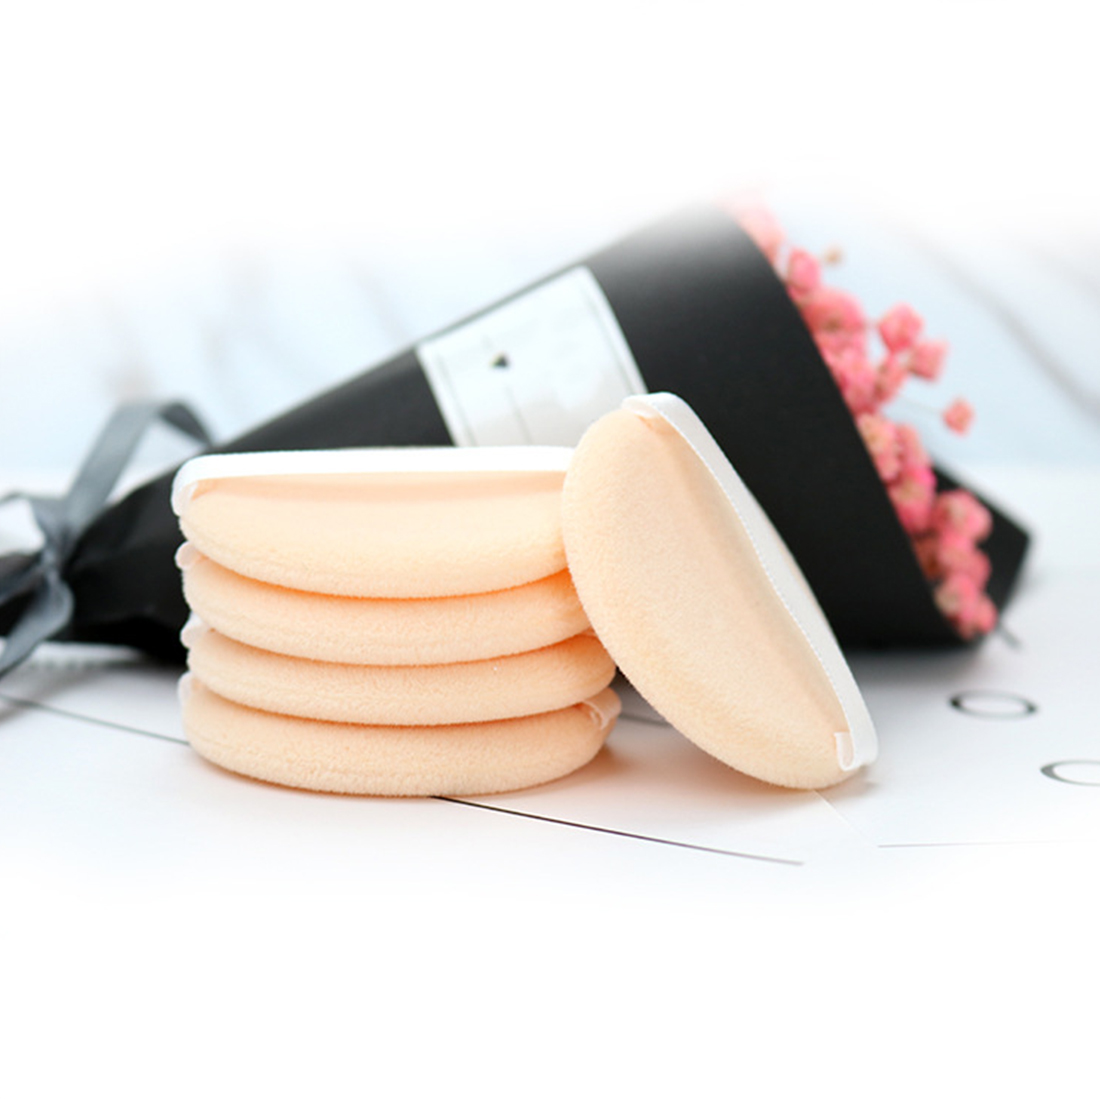 Woolen Cloth Soft Skin-friendly Face Smooth Foundation Powder Cosmetic Puff Organic Cotton Pads Makeup Sponge Puff Beauty 5PCS image